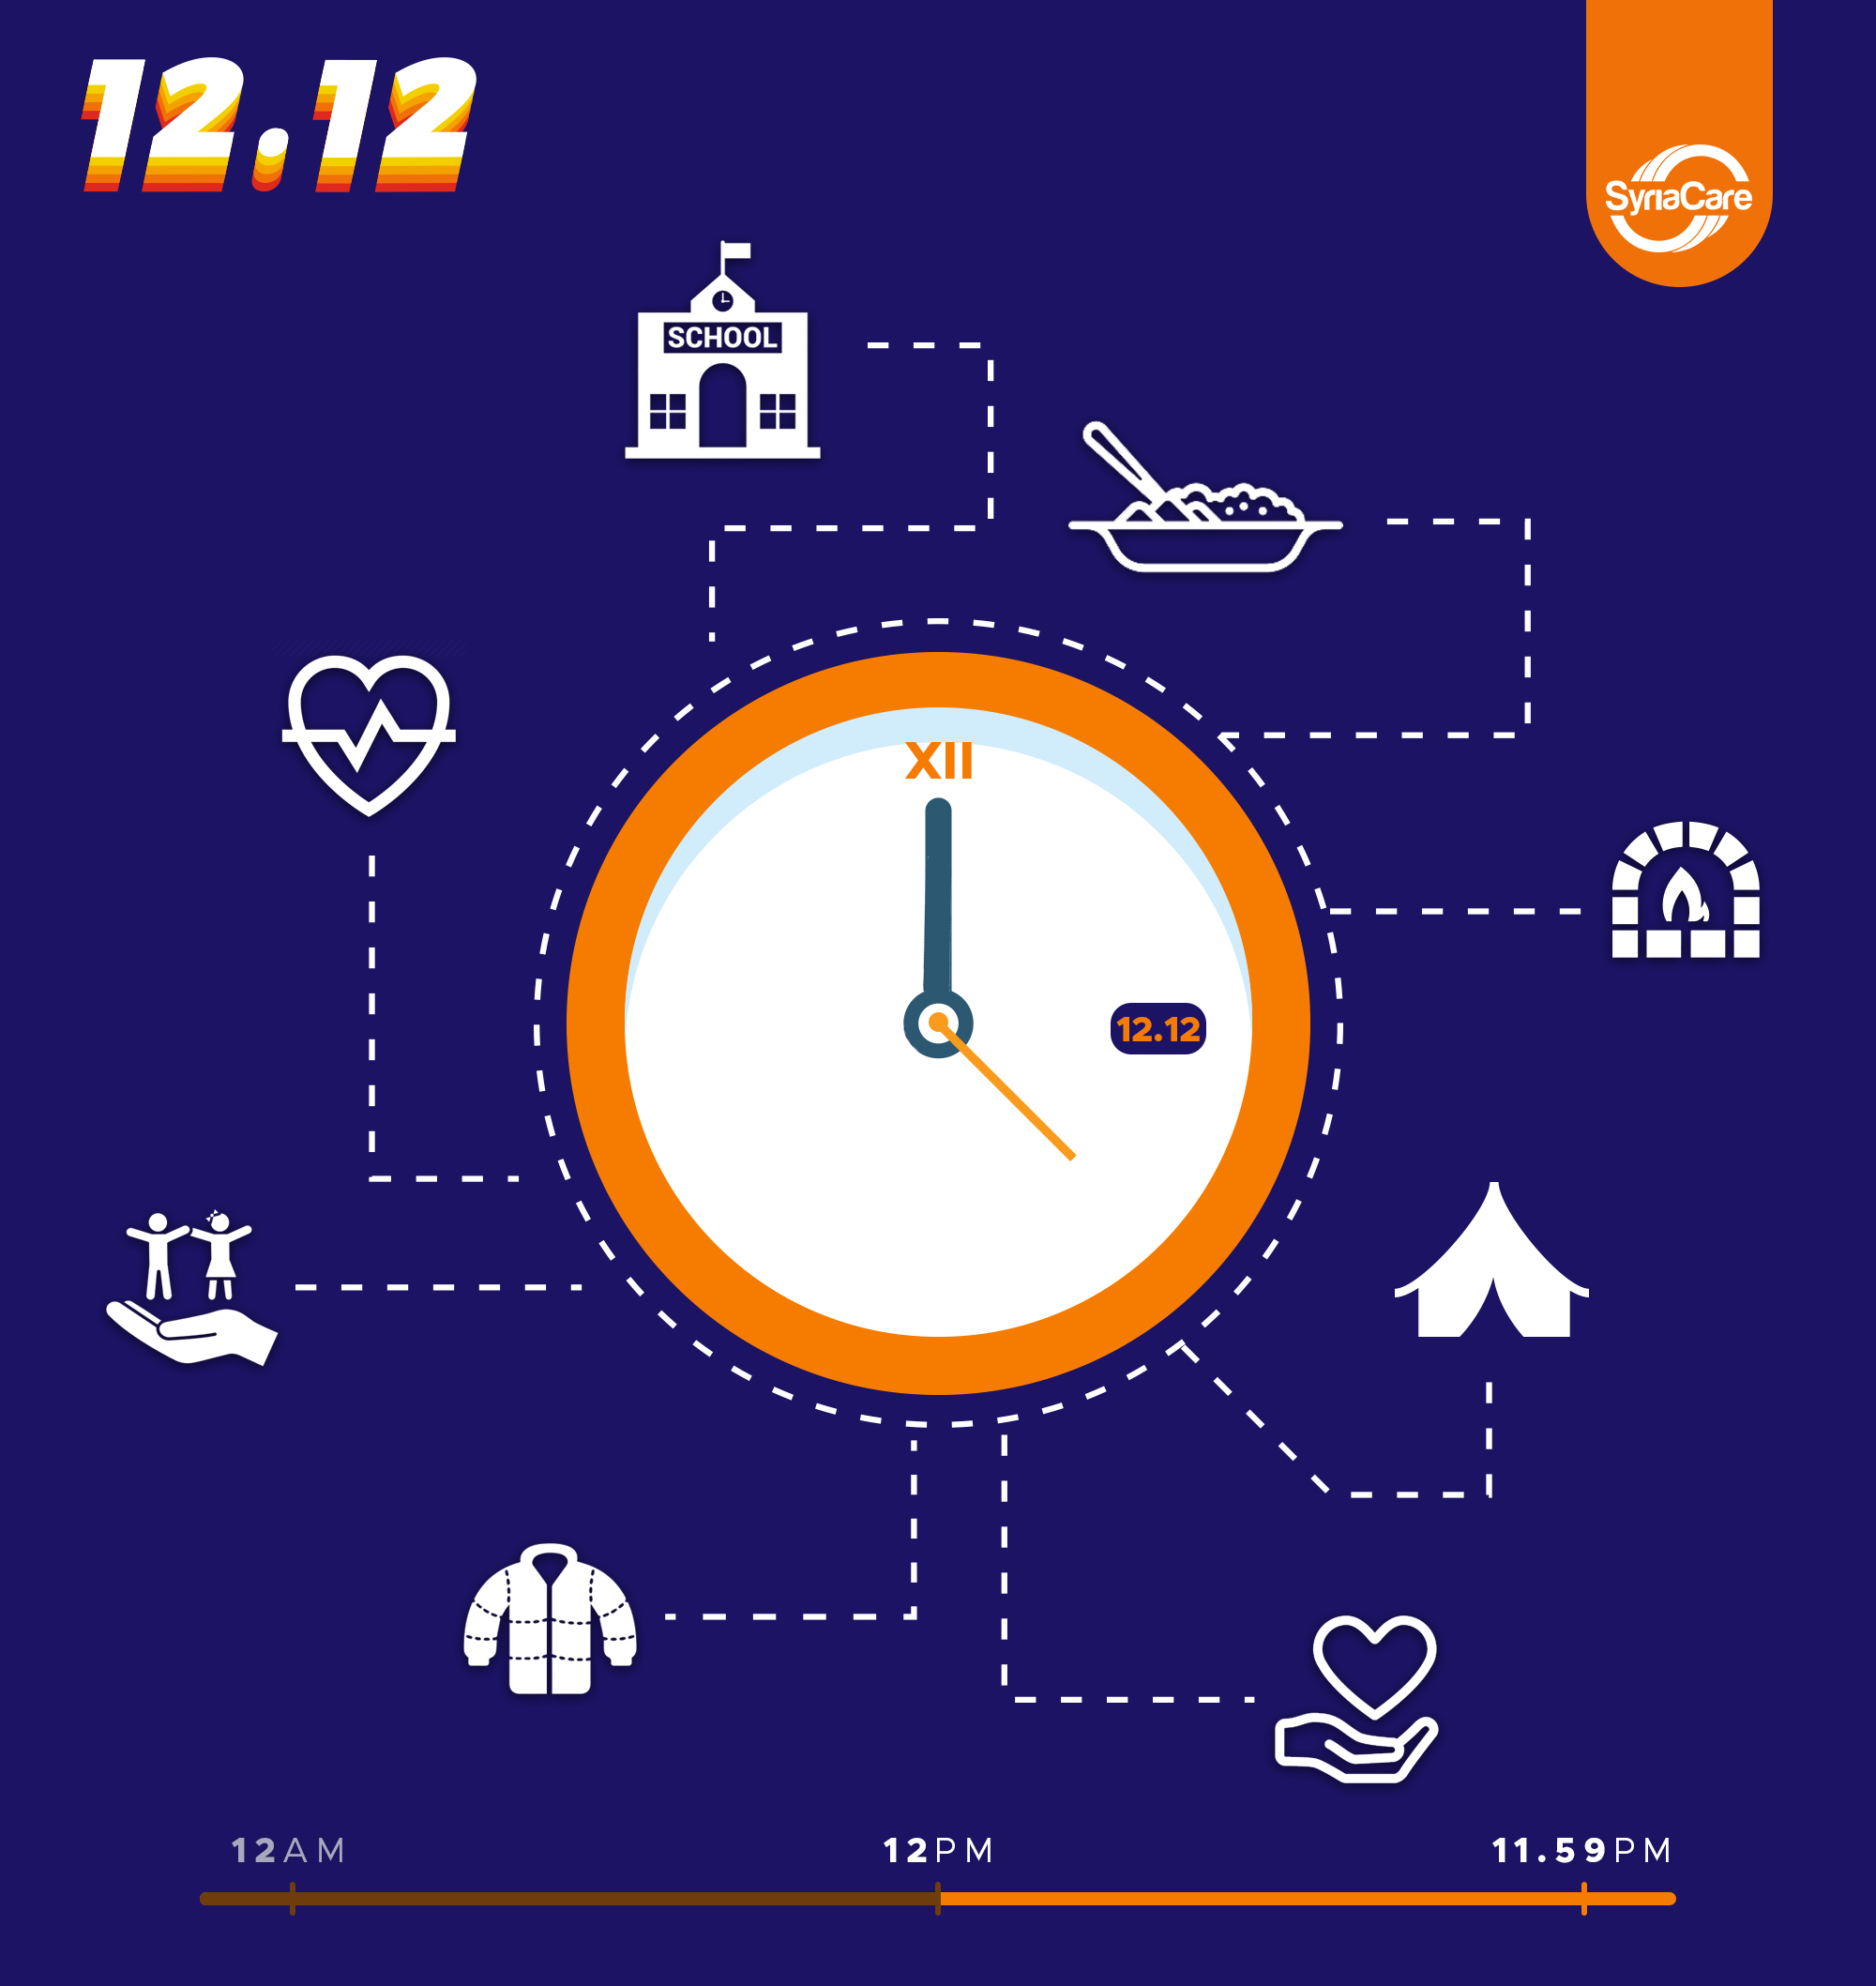 Mega Sedekah Day 12.12 clock 12 pm